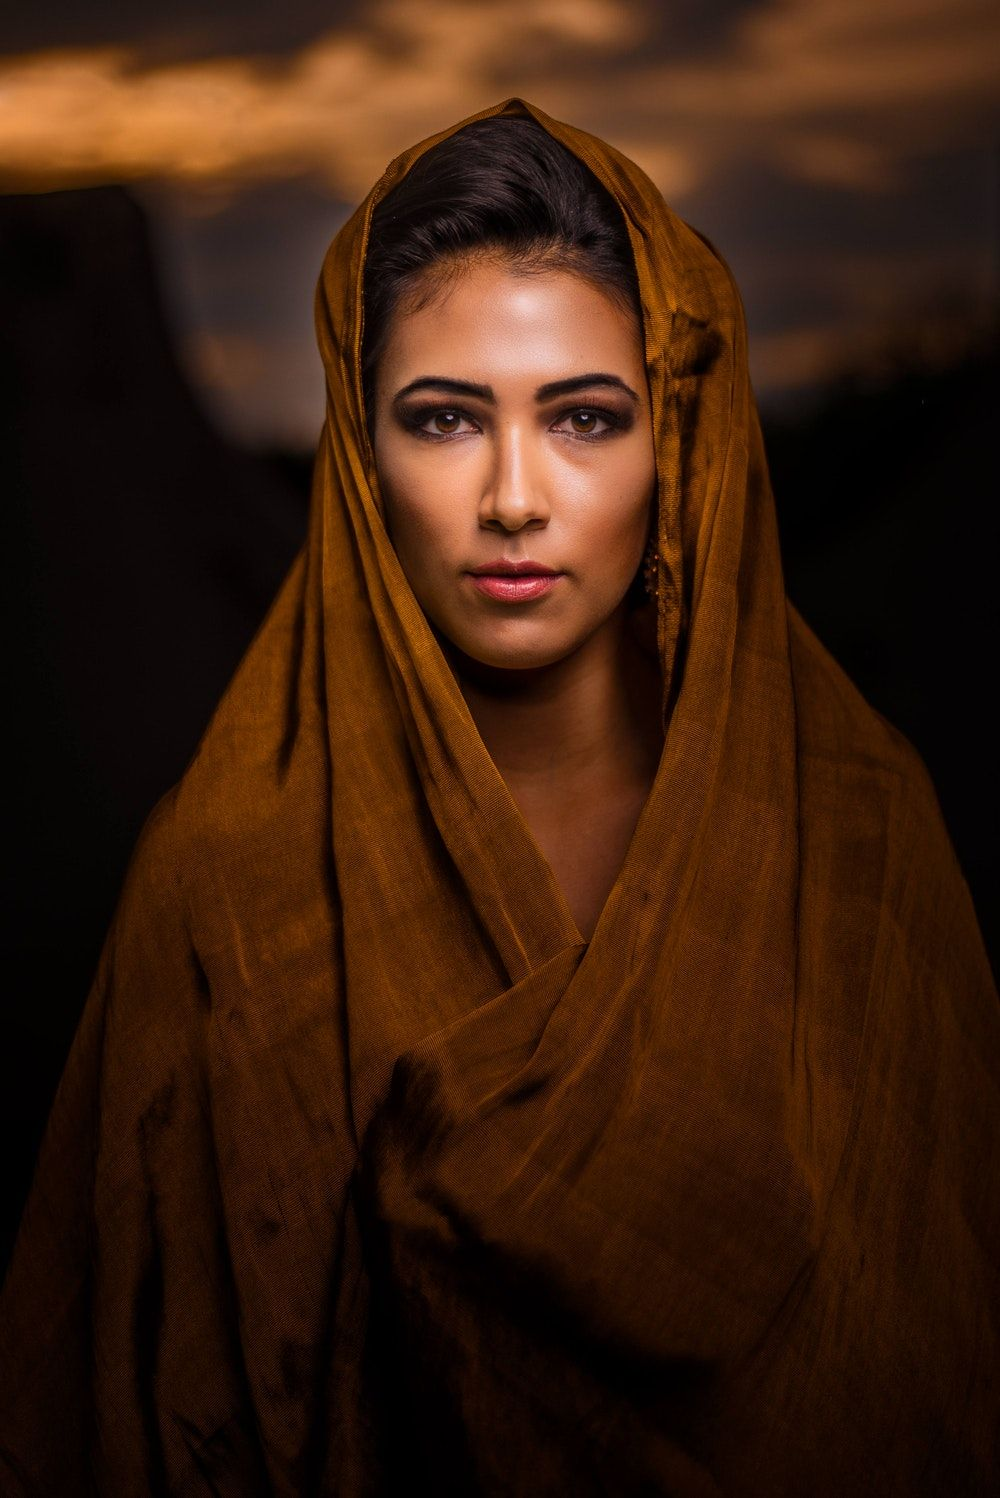 Portrait Photography Of Woman Wearing Brown Headscarf Portrats Schnittchen